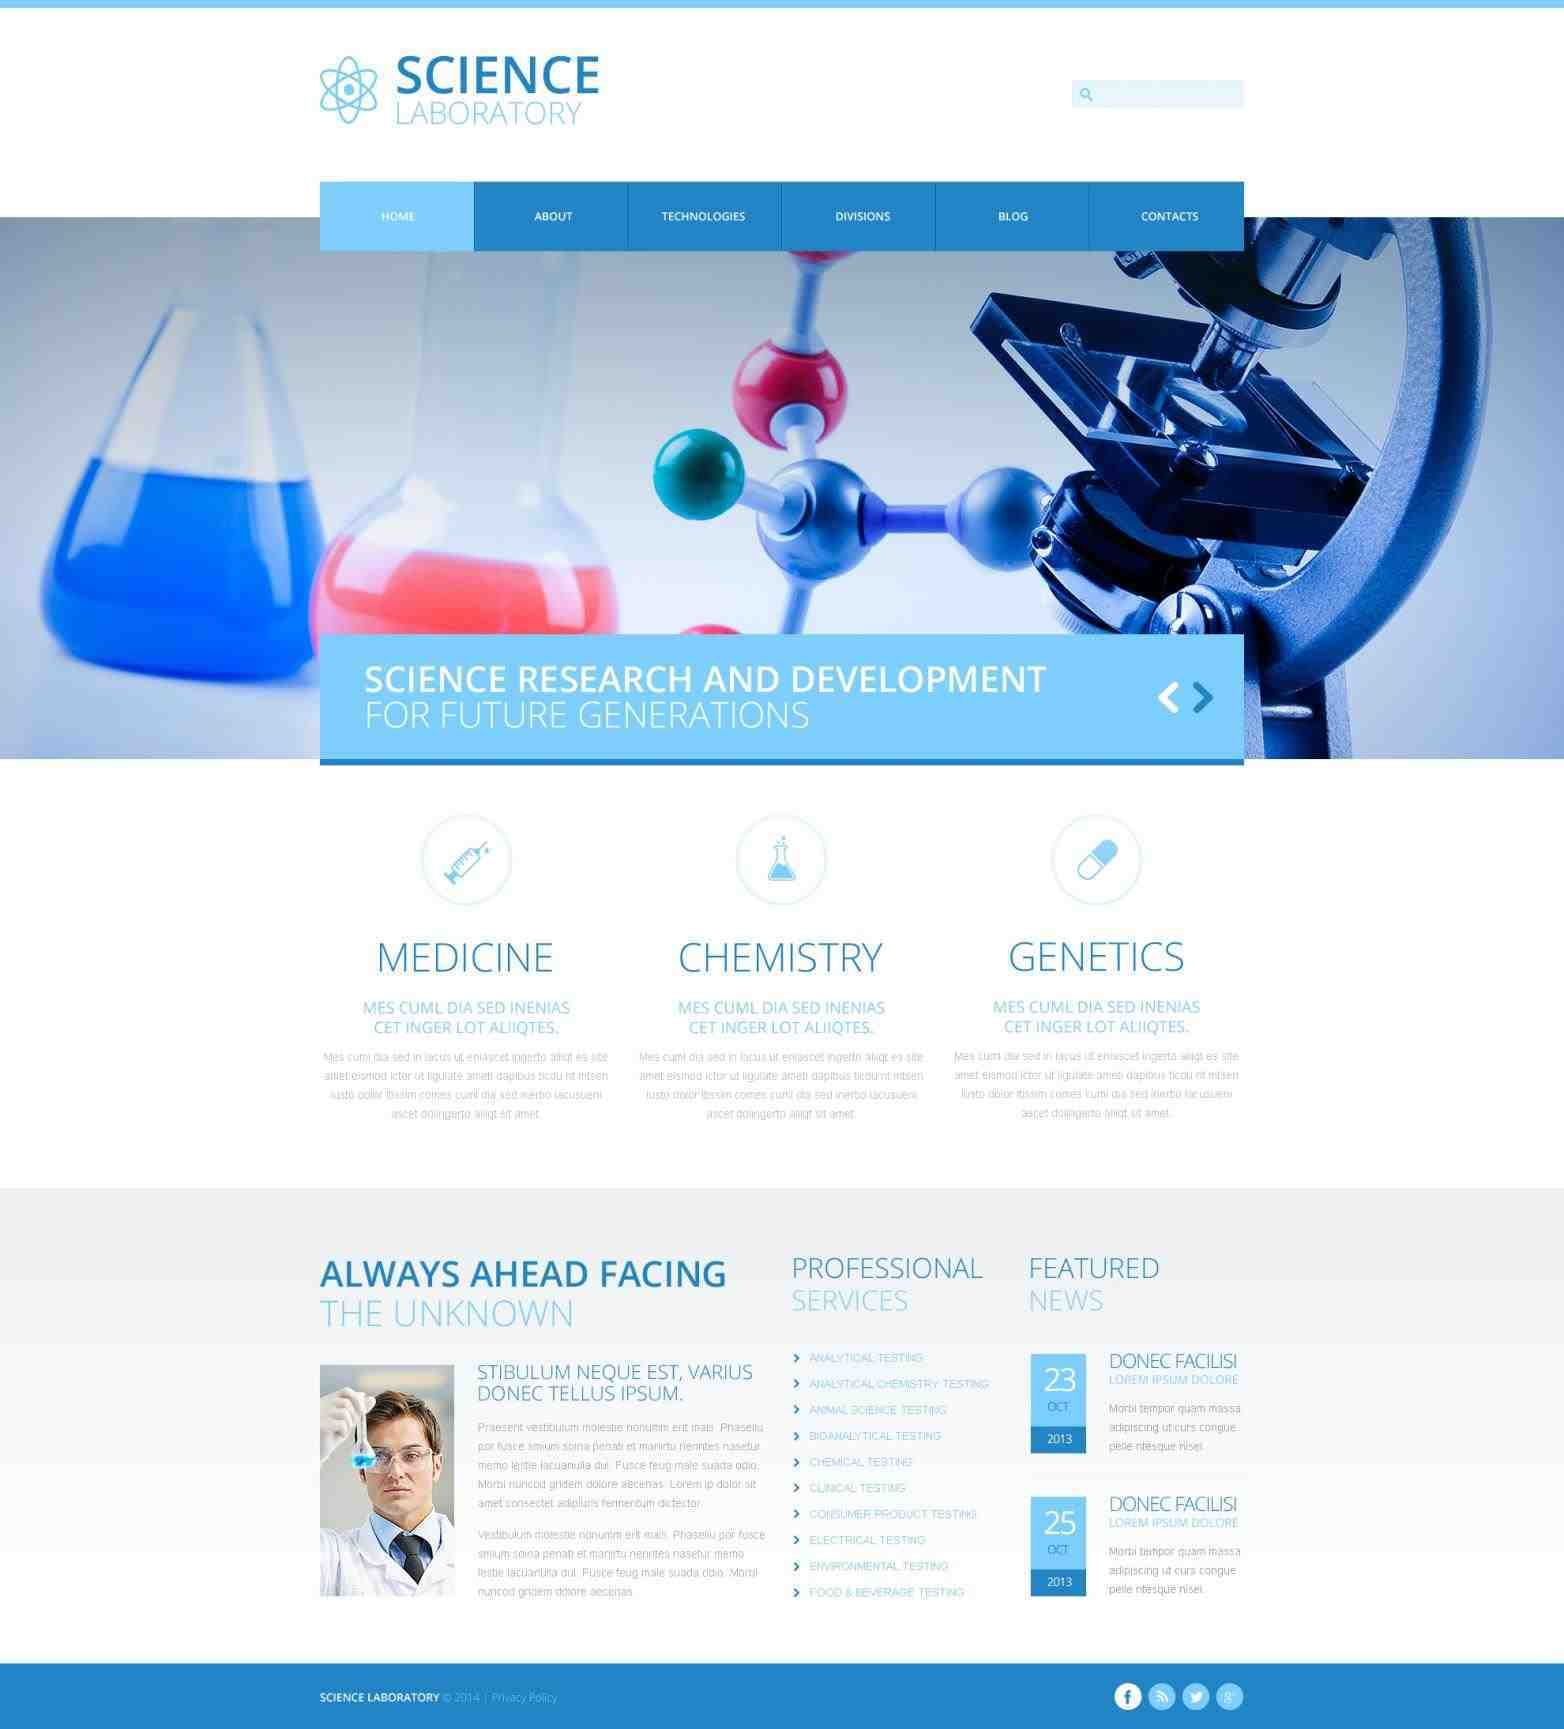 Free science newsletter templates newsletter templates u examples free science newsletter templates newsletter templates u examples templates student hub the mcmaster social science society maxwellsz